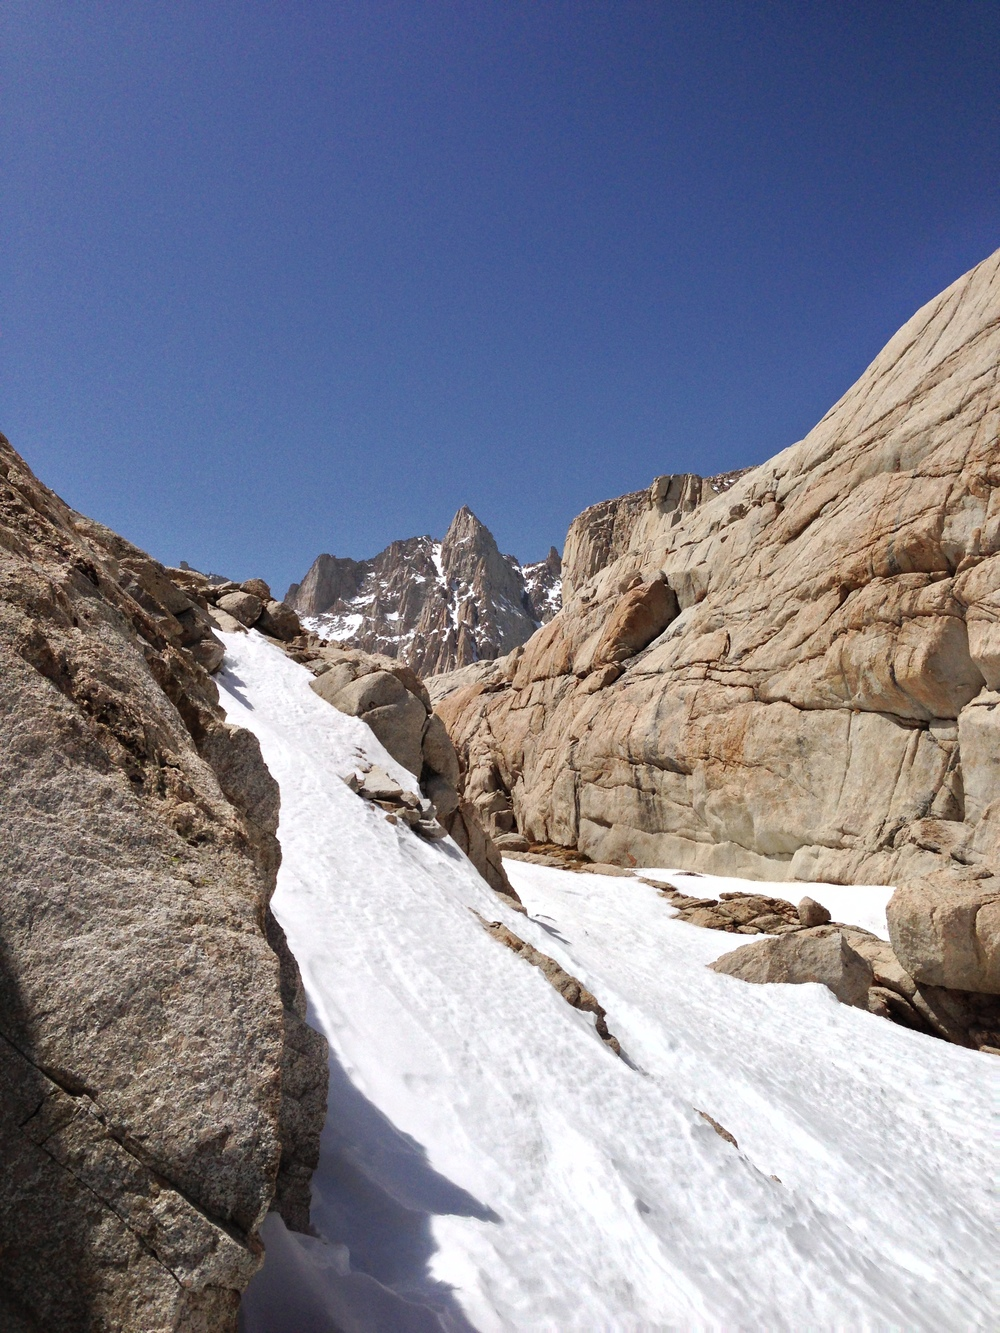 Mt. Whitney Trail, April 2013